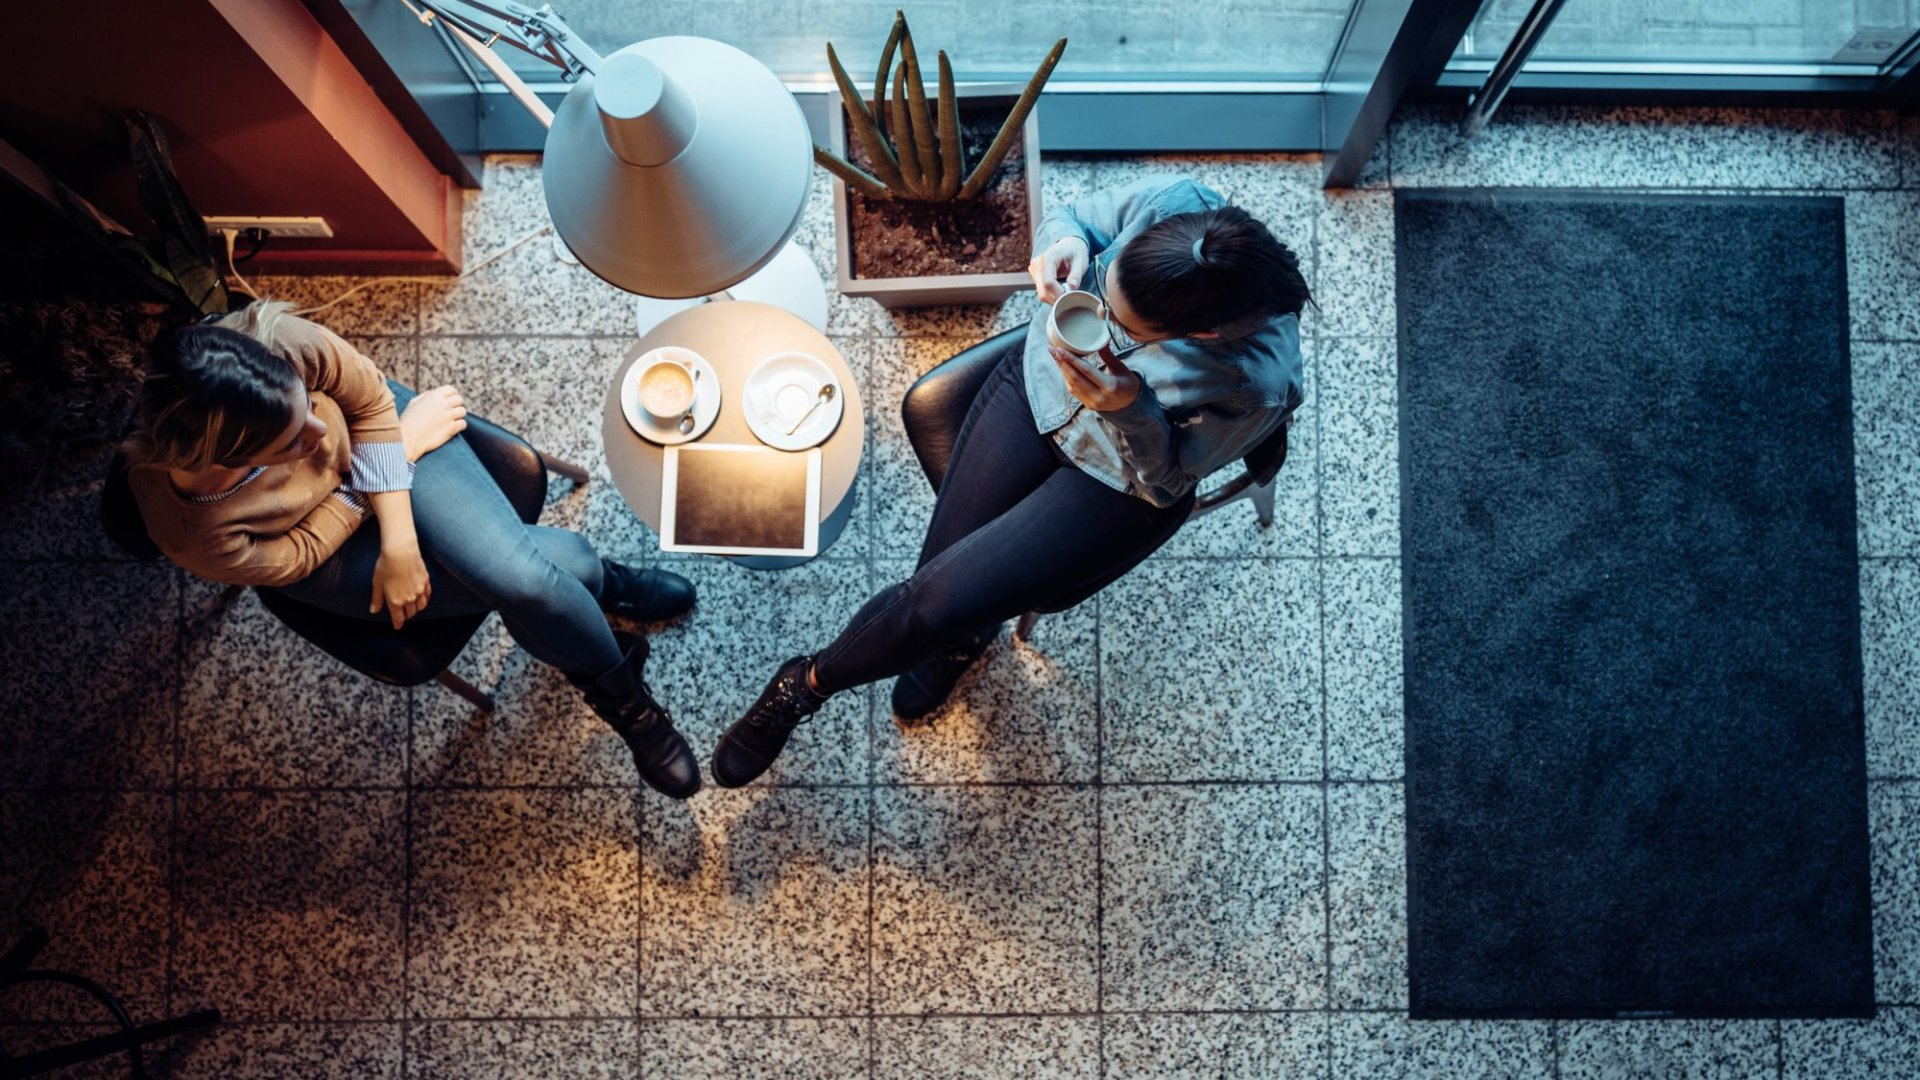 4 Ways I've Learned to Make Time for Friends While Working Full-Time